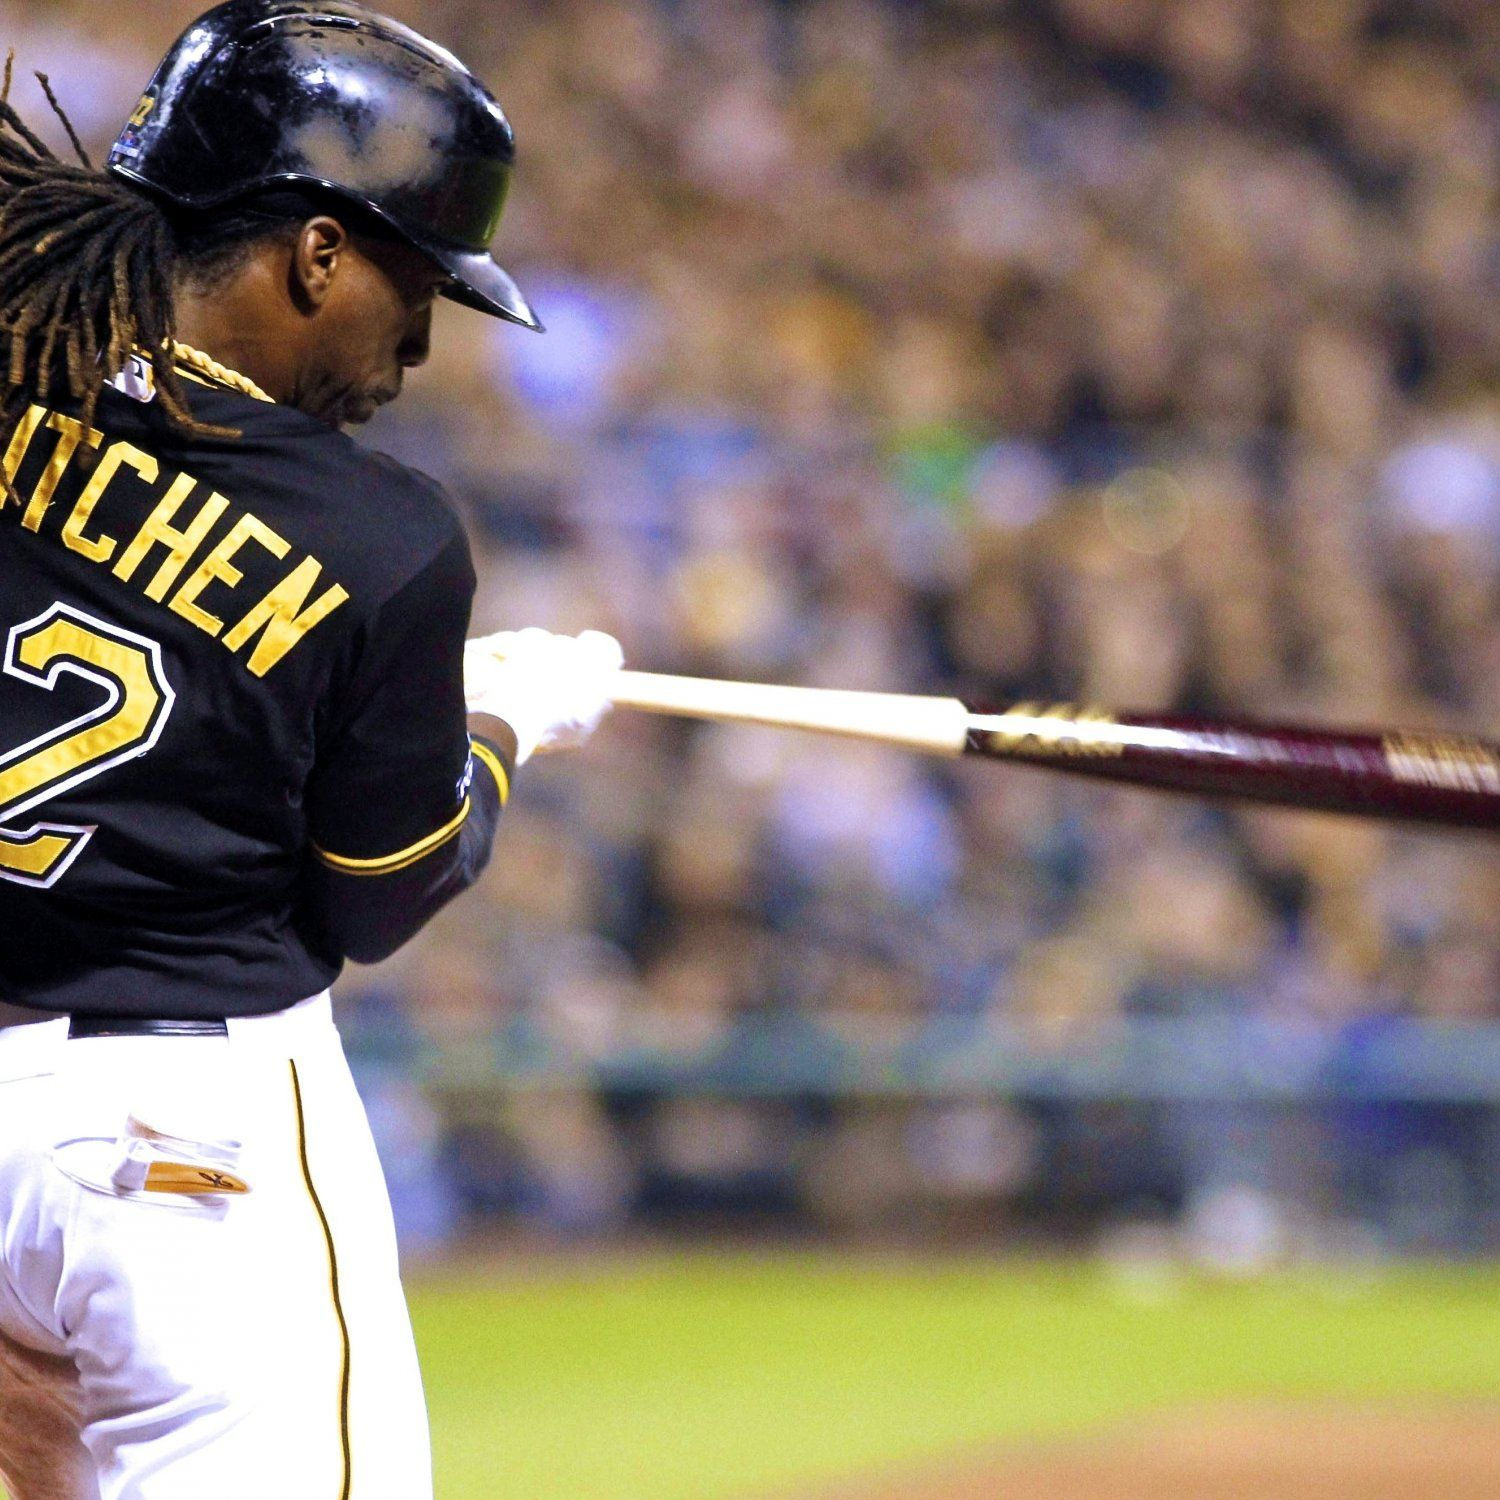 Fantasy Baseball 2014 Ranking The Top 50 Outfielders Fantasy Baseball Baseball Mlb Teams